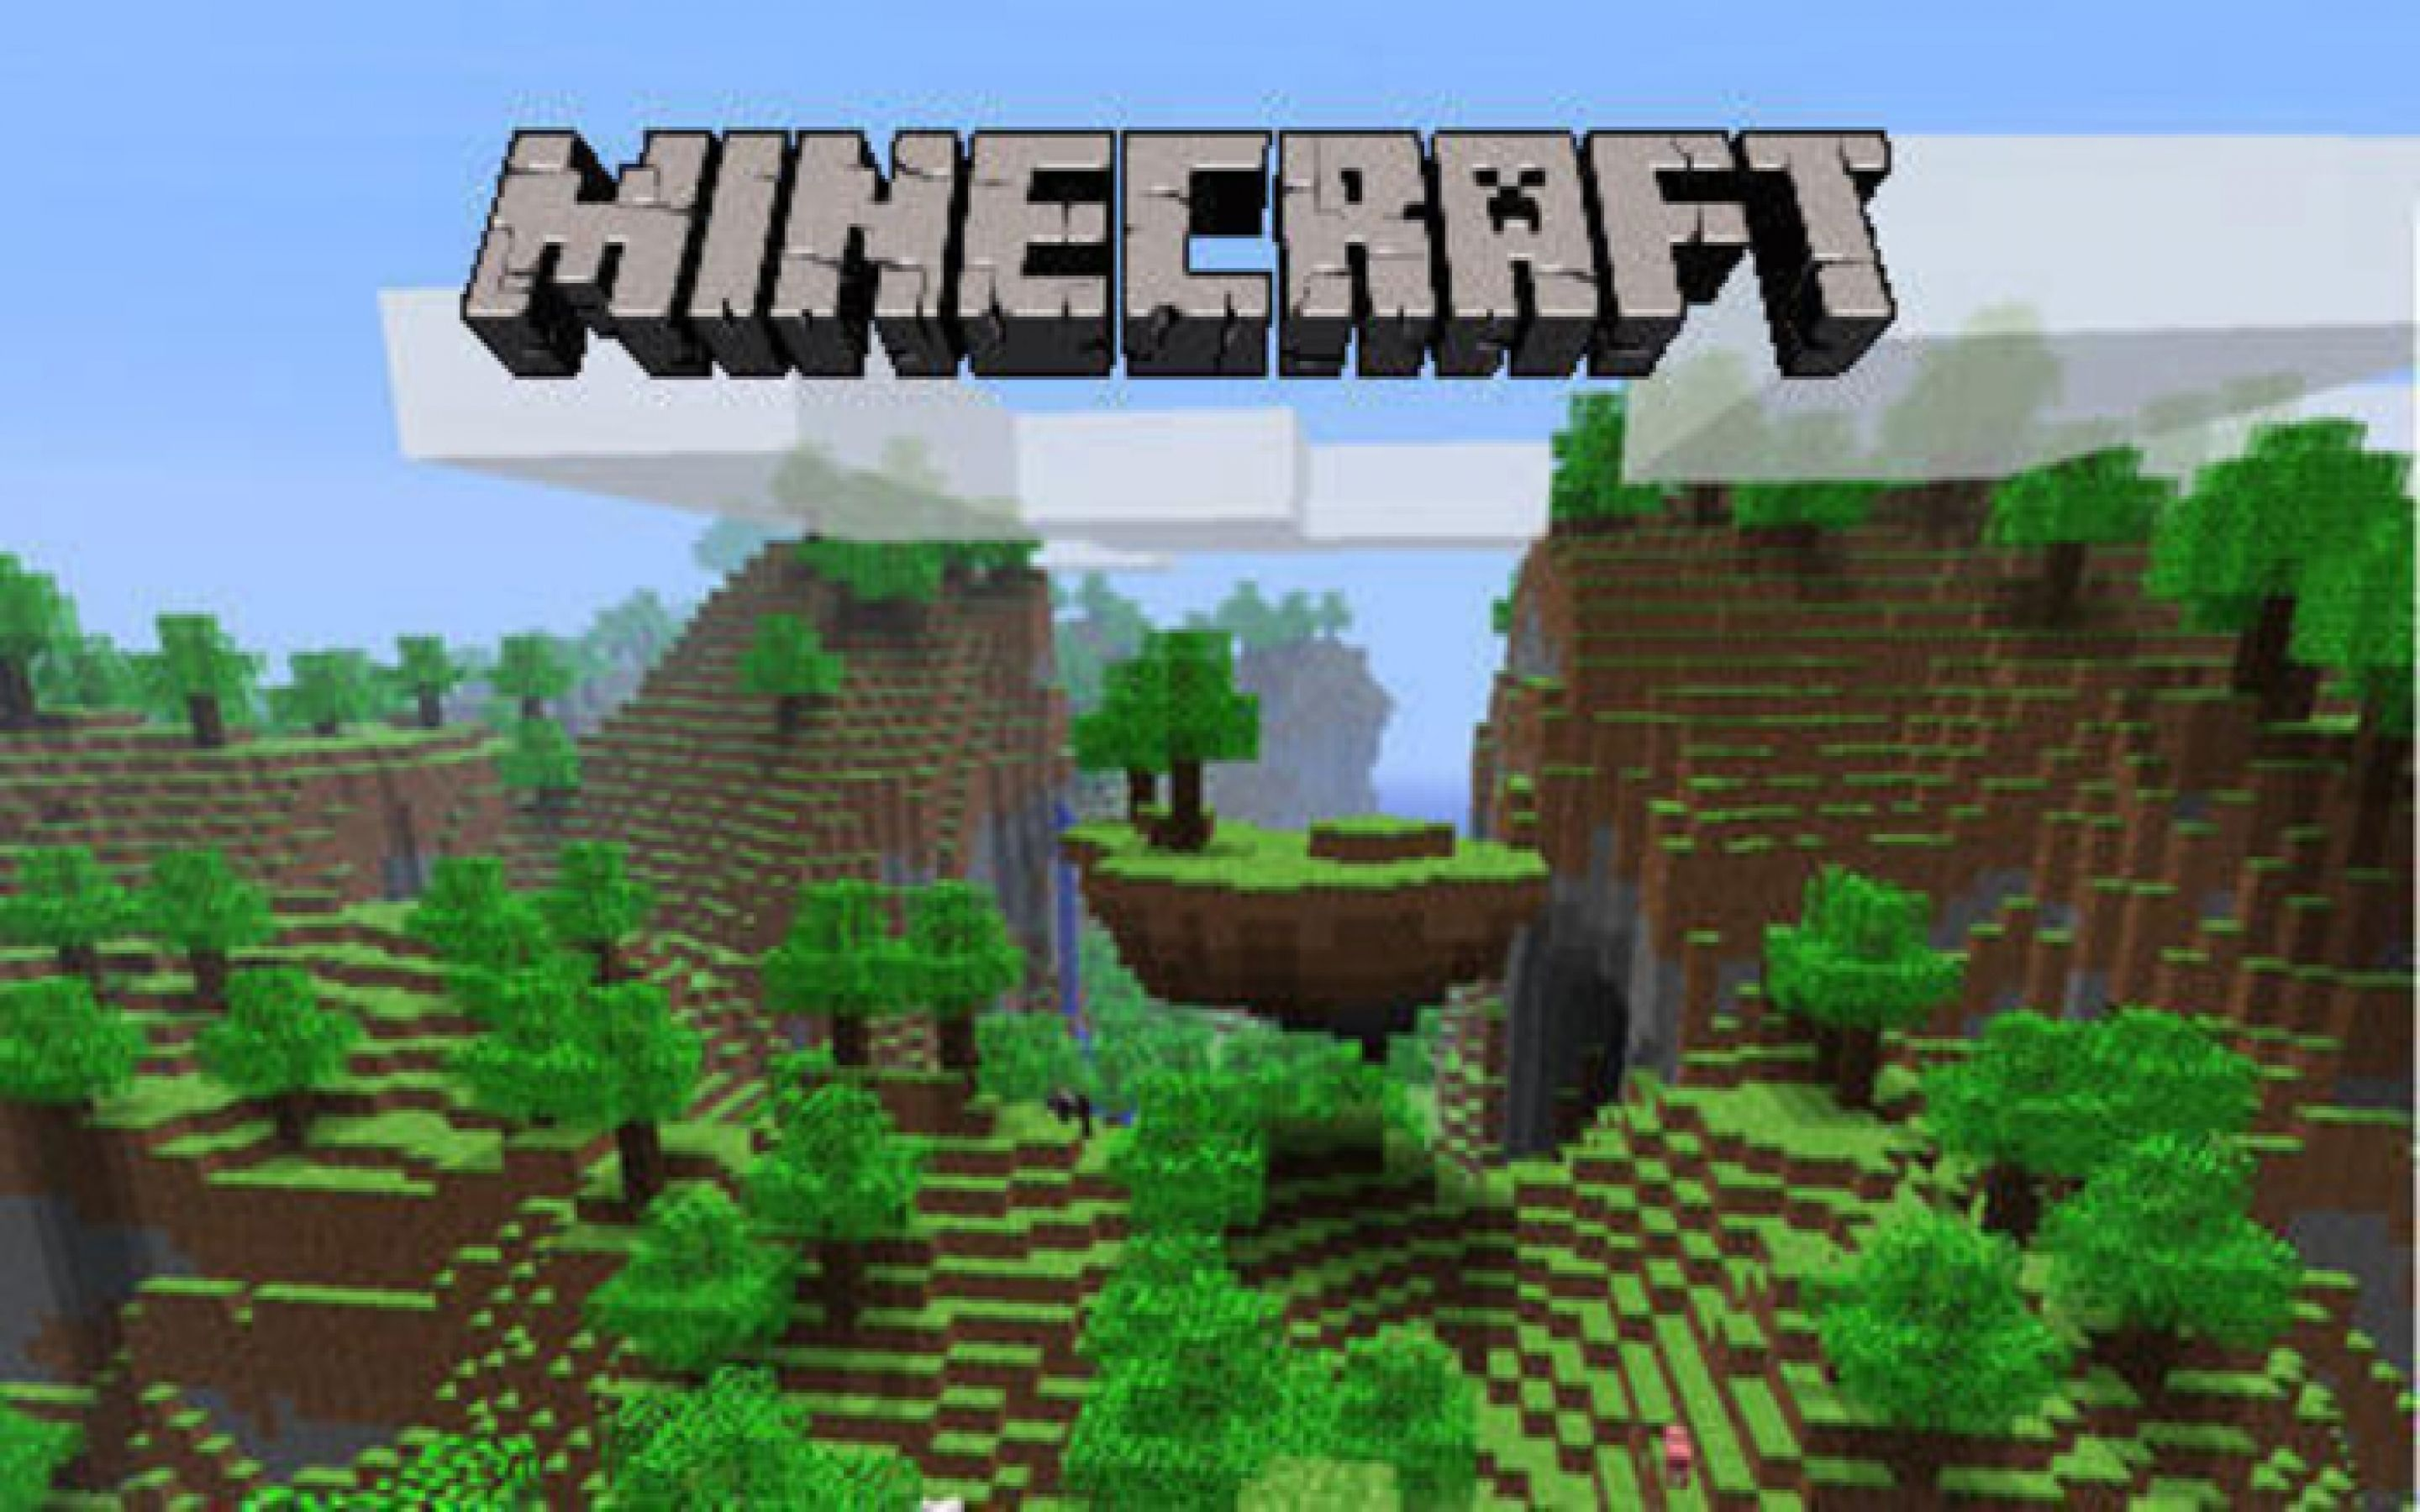 Cool Wallpaper Minecraft Tablet - 962a08b400130b843e5e7f61ab8677a8  Collection_314962.jpg